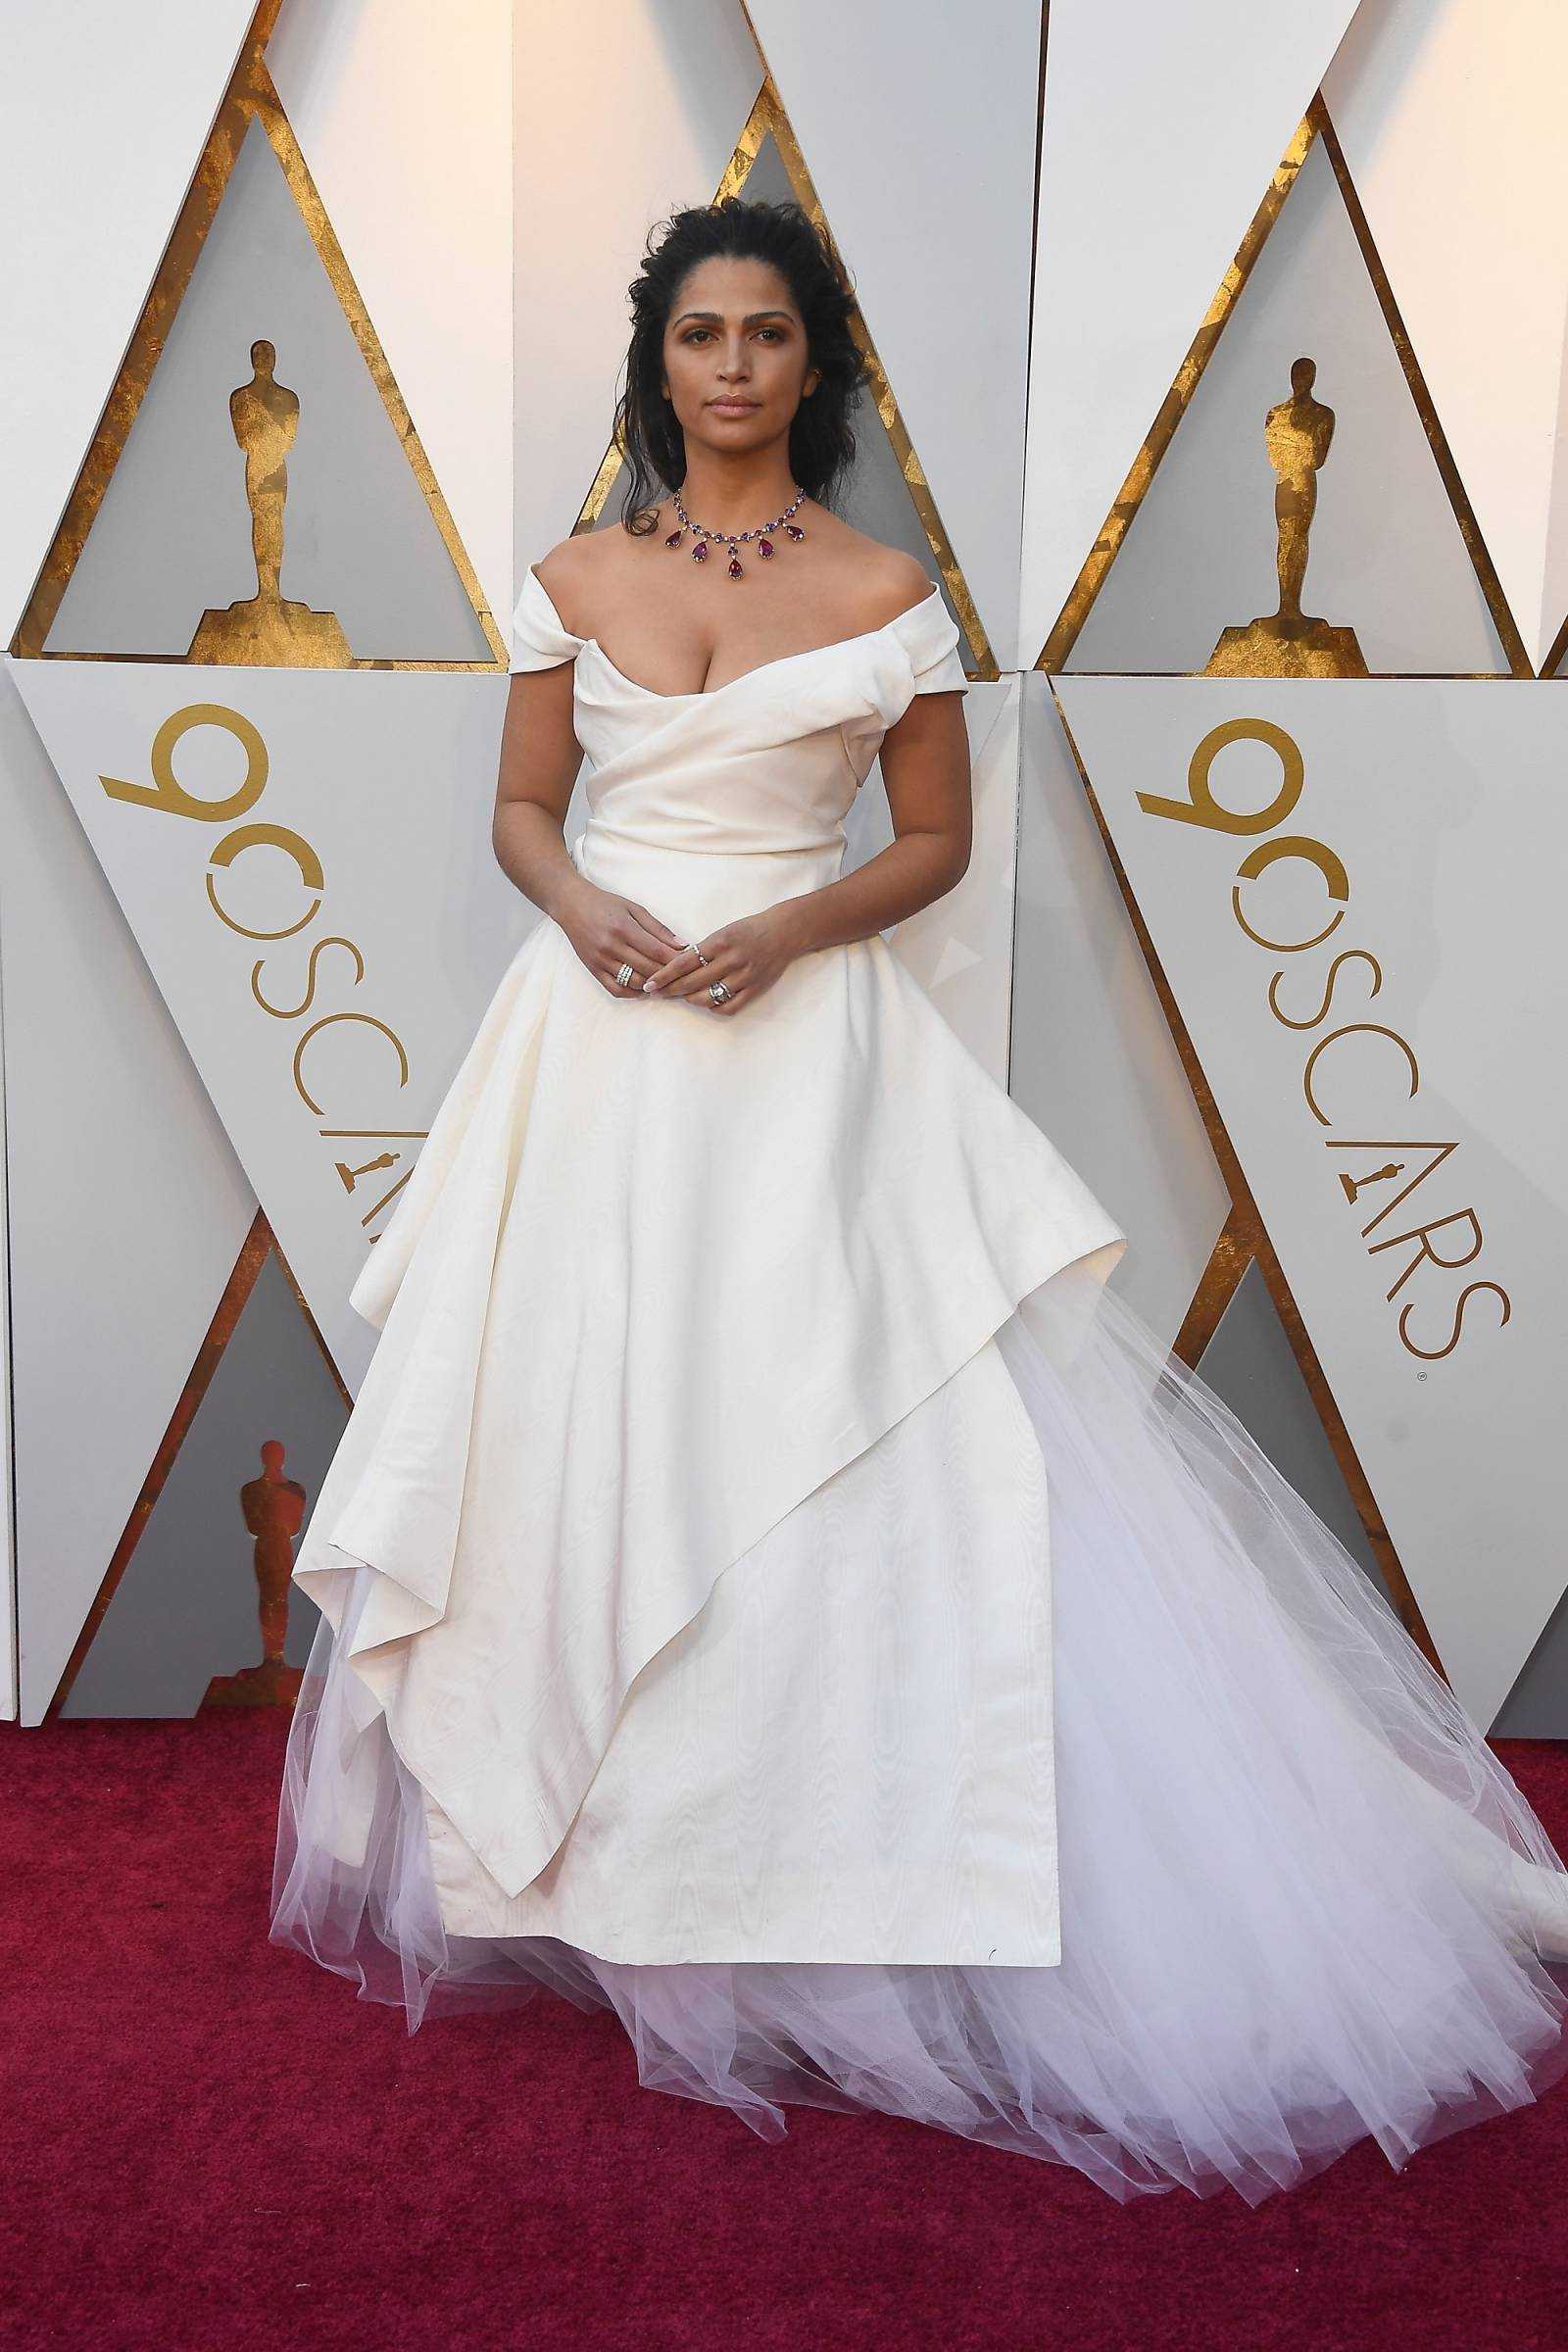 oscars 2018 fashion roundup our favorite wedding worthy looks los angeles gallery item 19